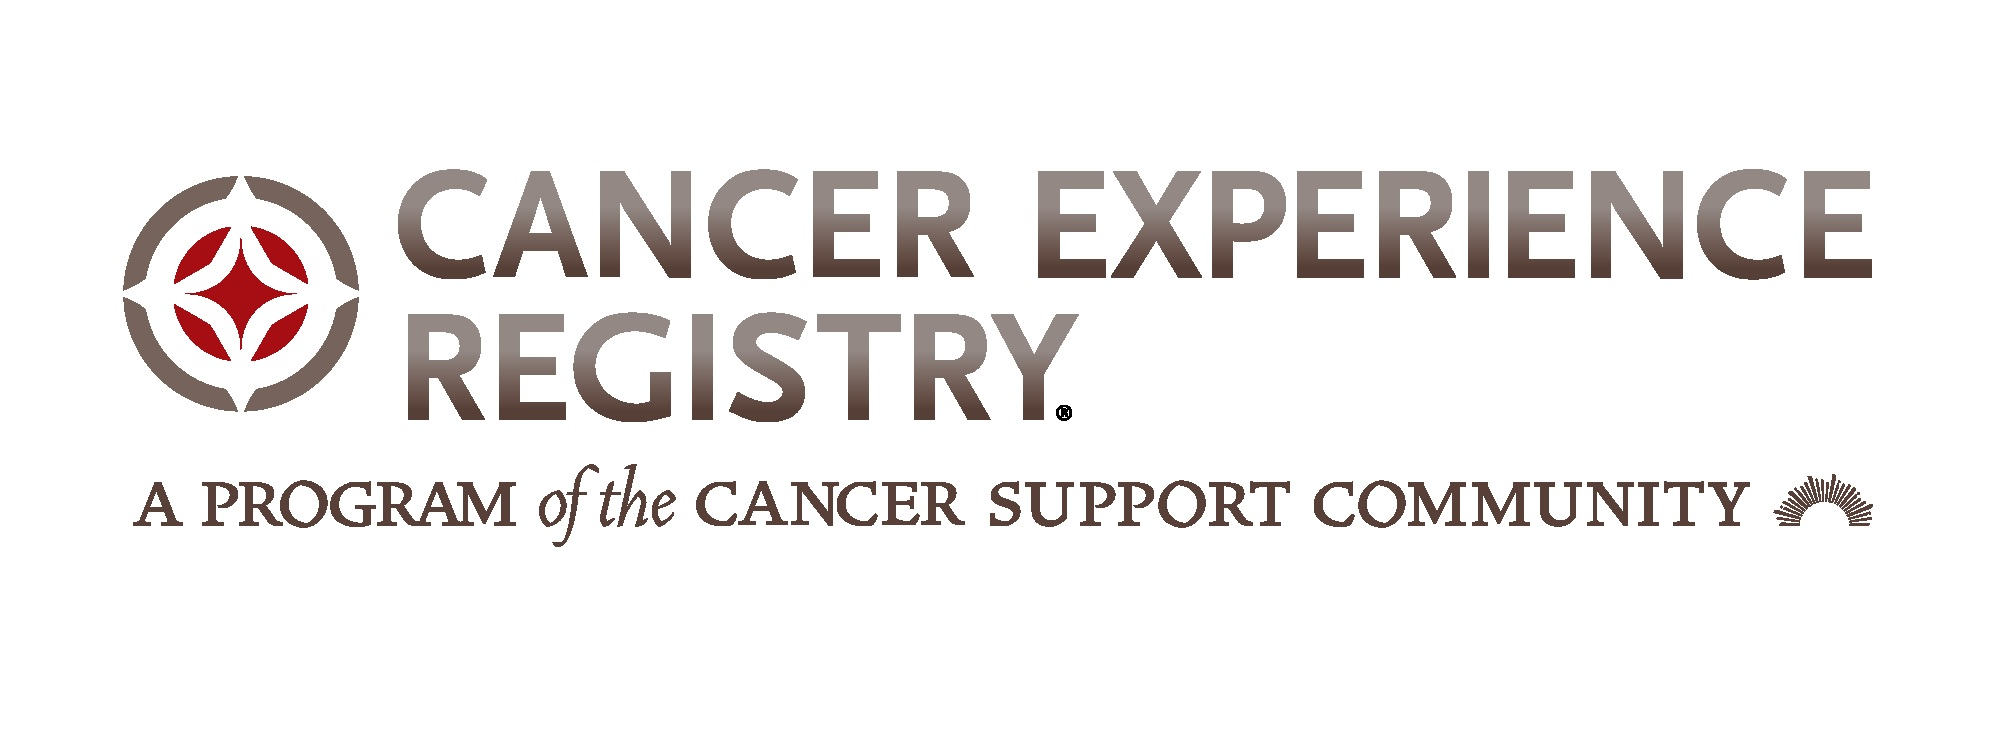 Share your cancer experience and learn from others who share your cancer journey.